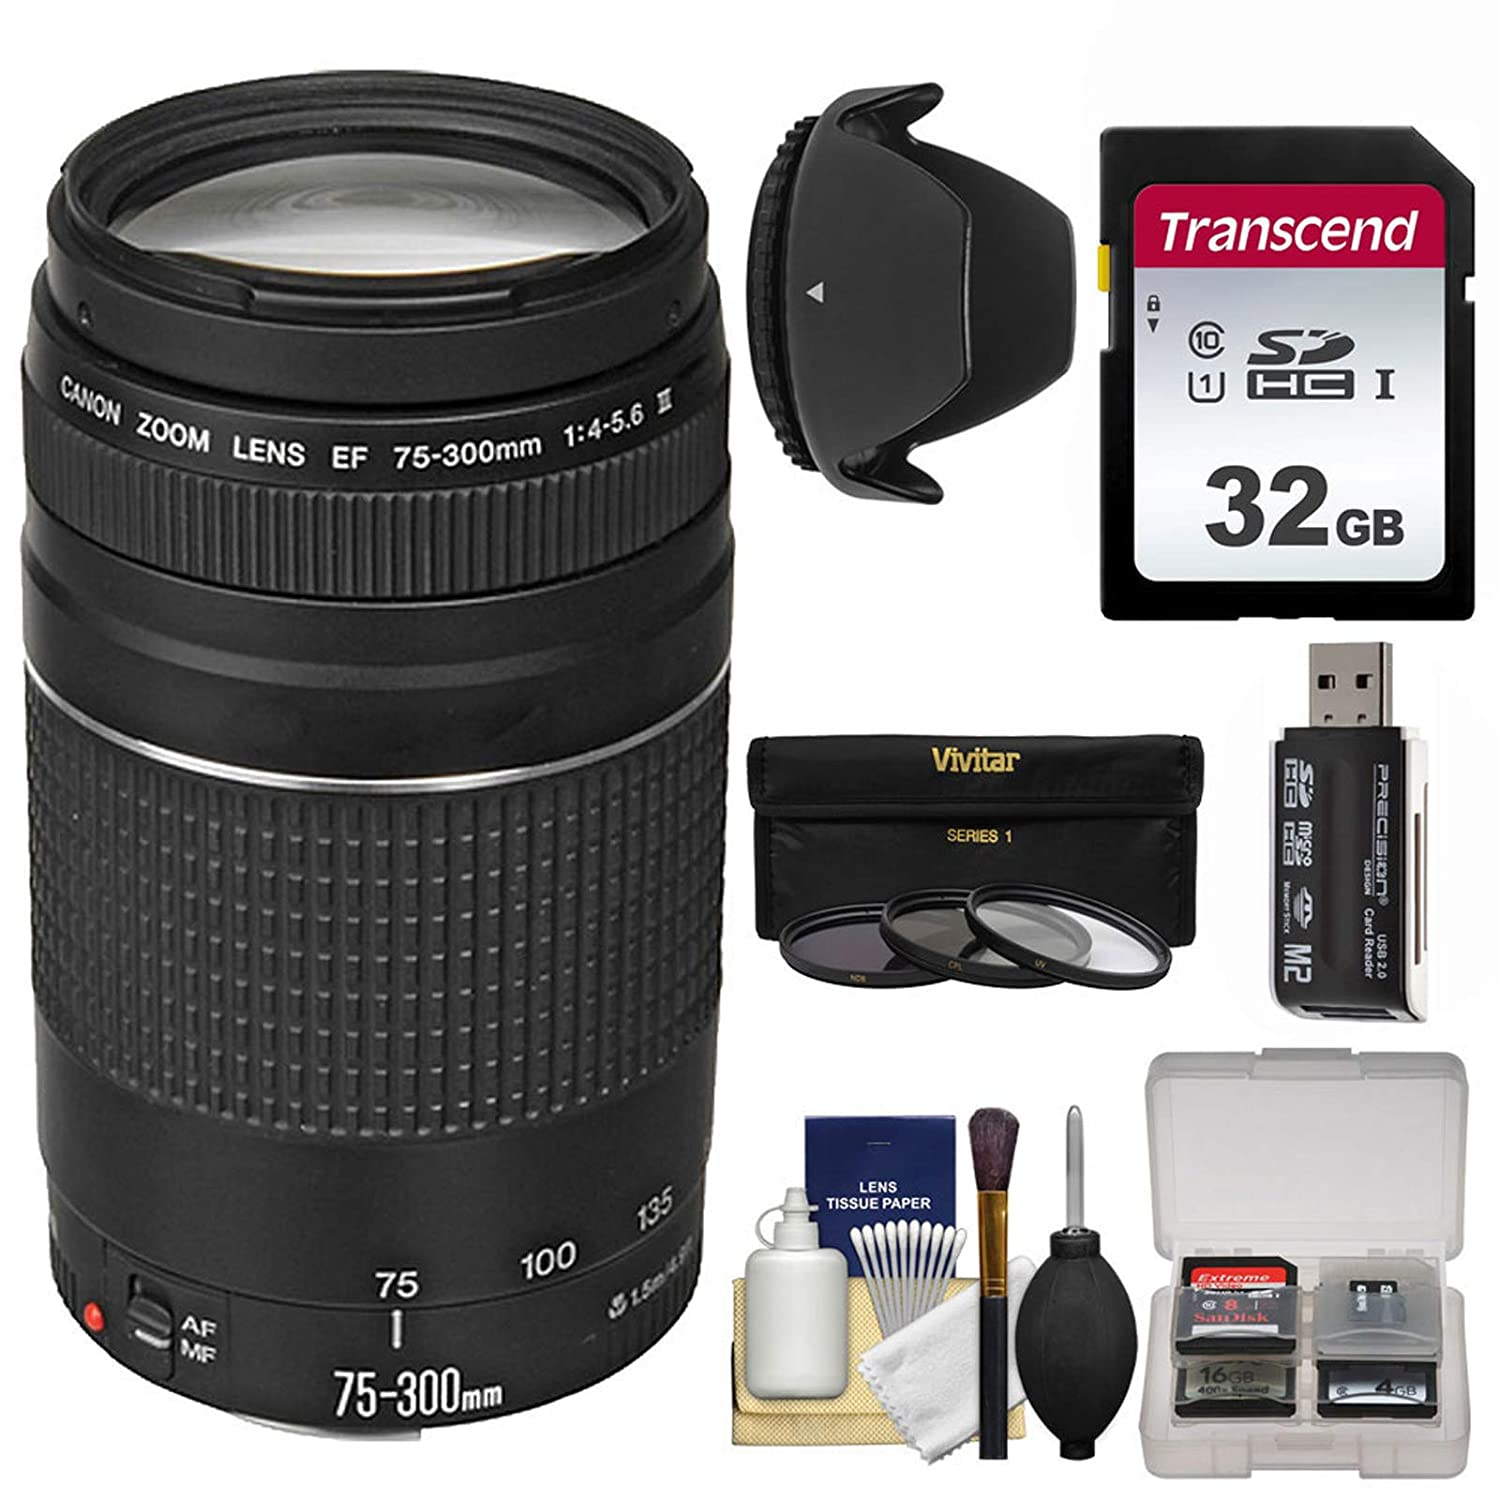 Kit for EOS 5D Mark II III 70D SL1 Cameras Rebel T3 6D 32GB SD Card 7D Hood T3i T5i T5 Canon EF 75-300mm f//4-5.6 III Zoom Lens with 3 Filters